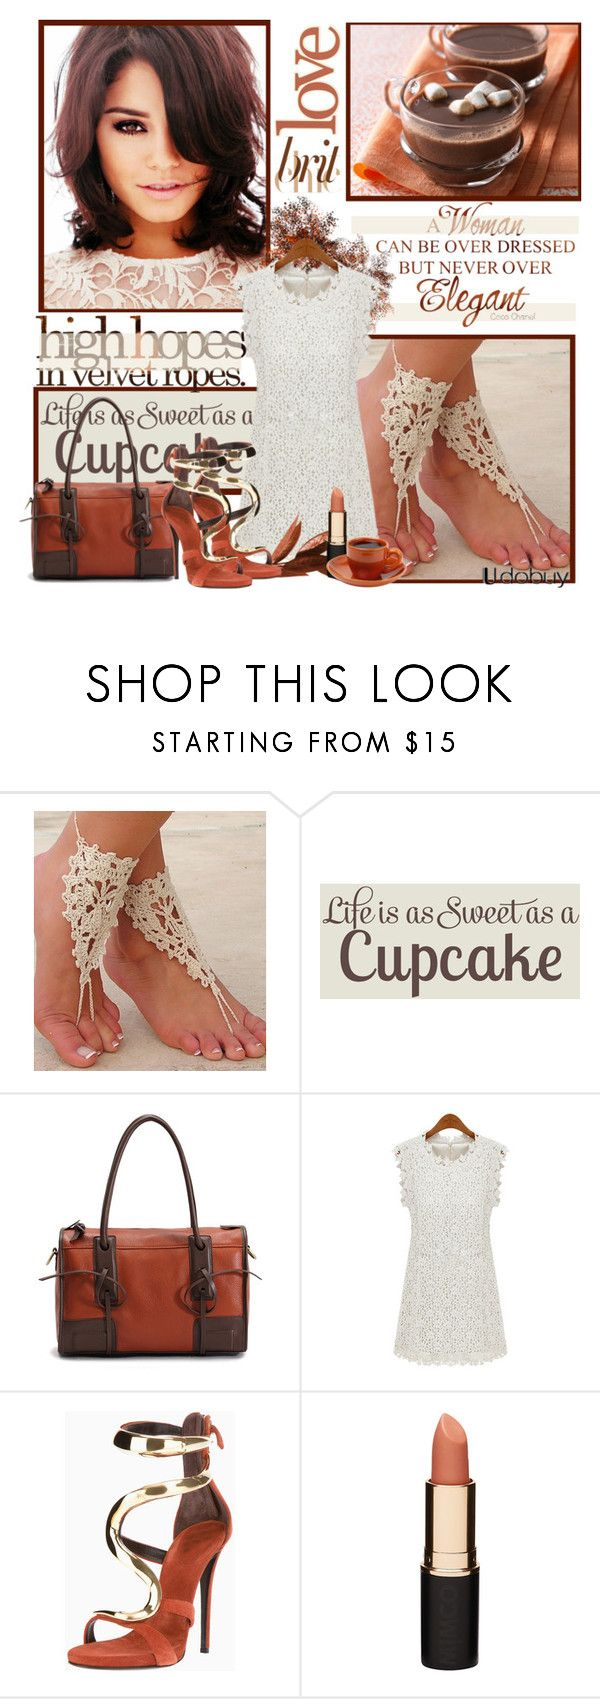 """""""UDOBUY80"""" by sneky ❤ liked on Polyvore featuring Retrò, Bailey, Mimco and udobuy"""